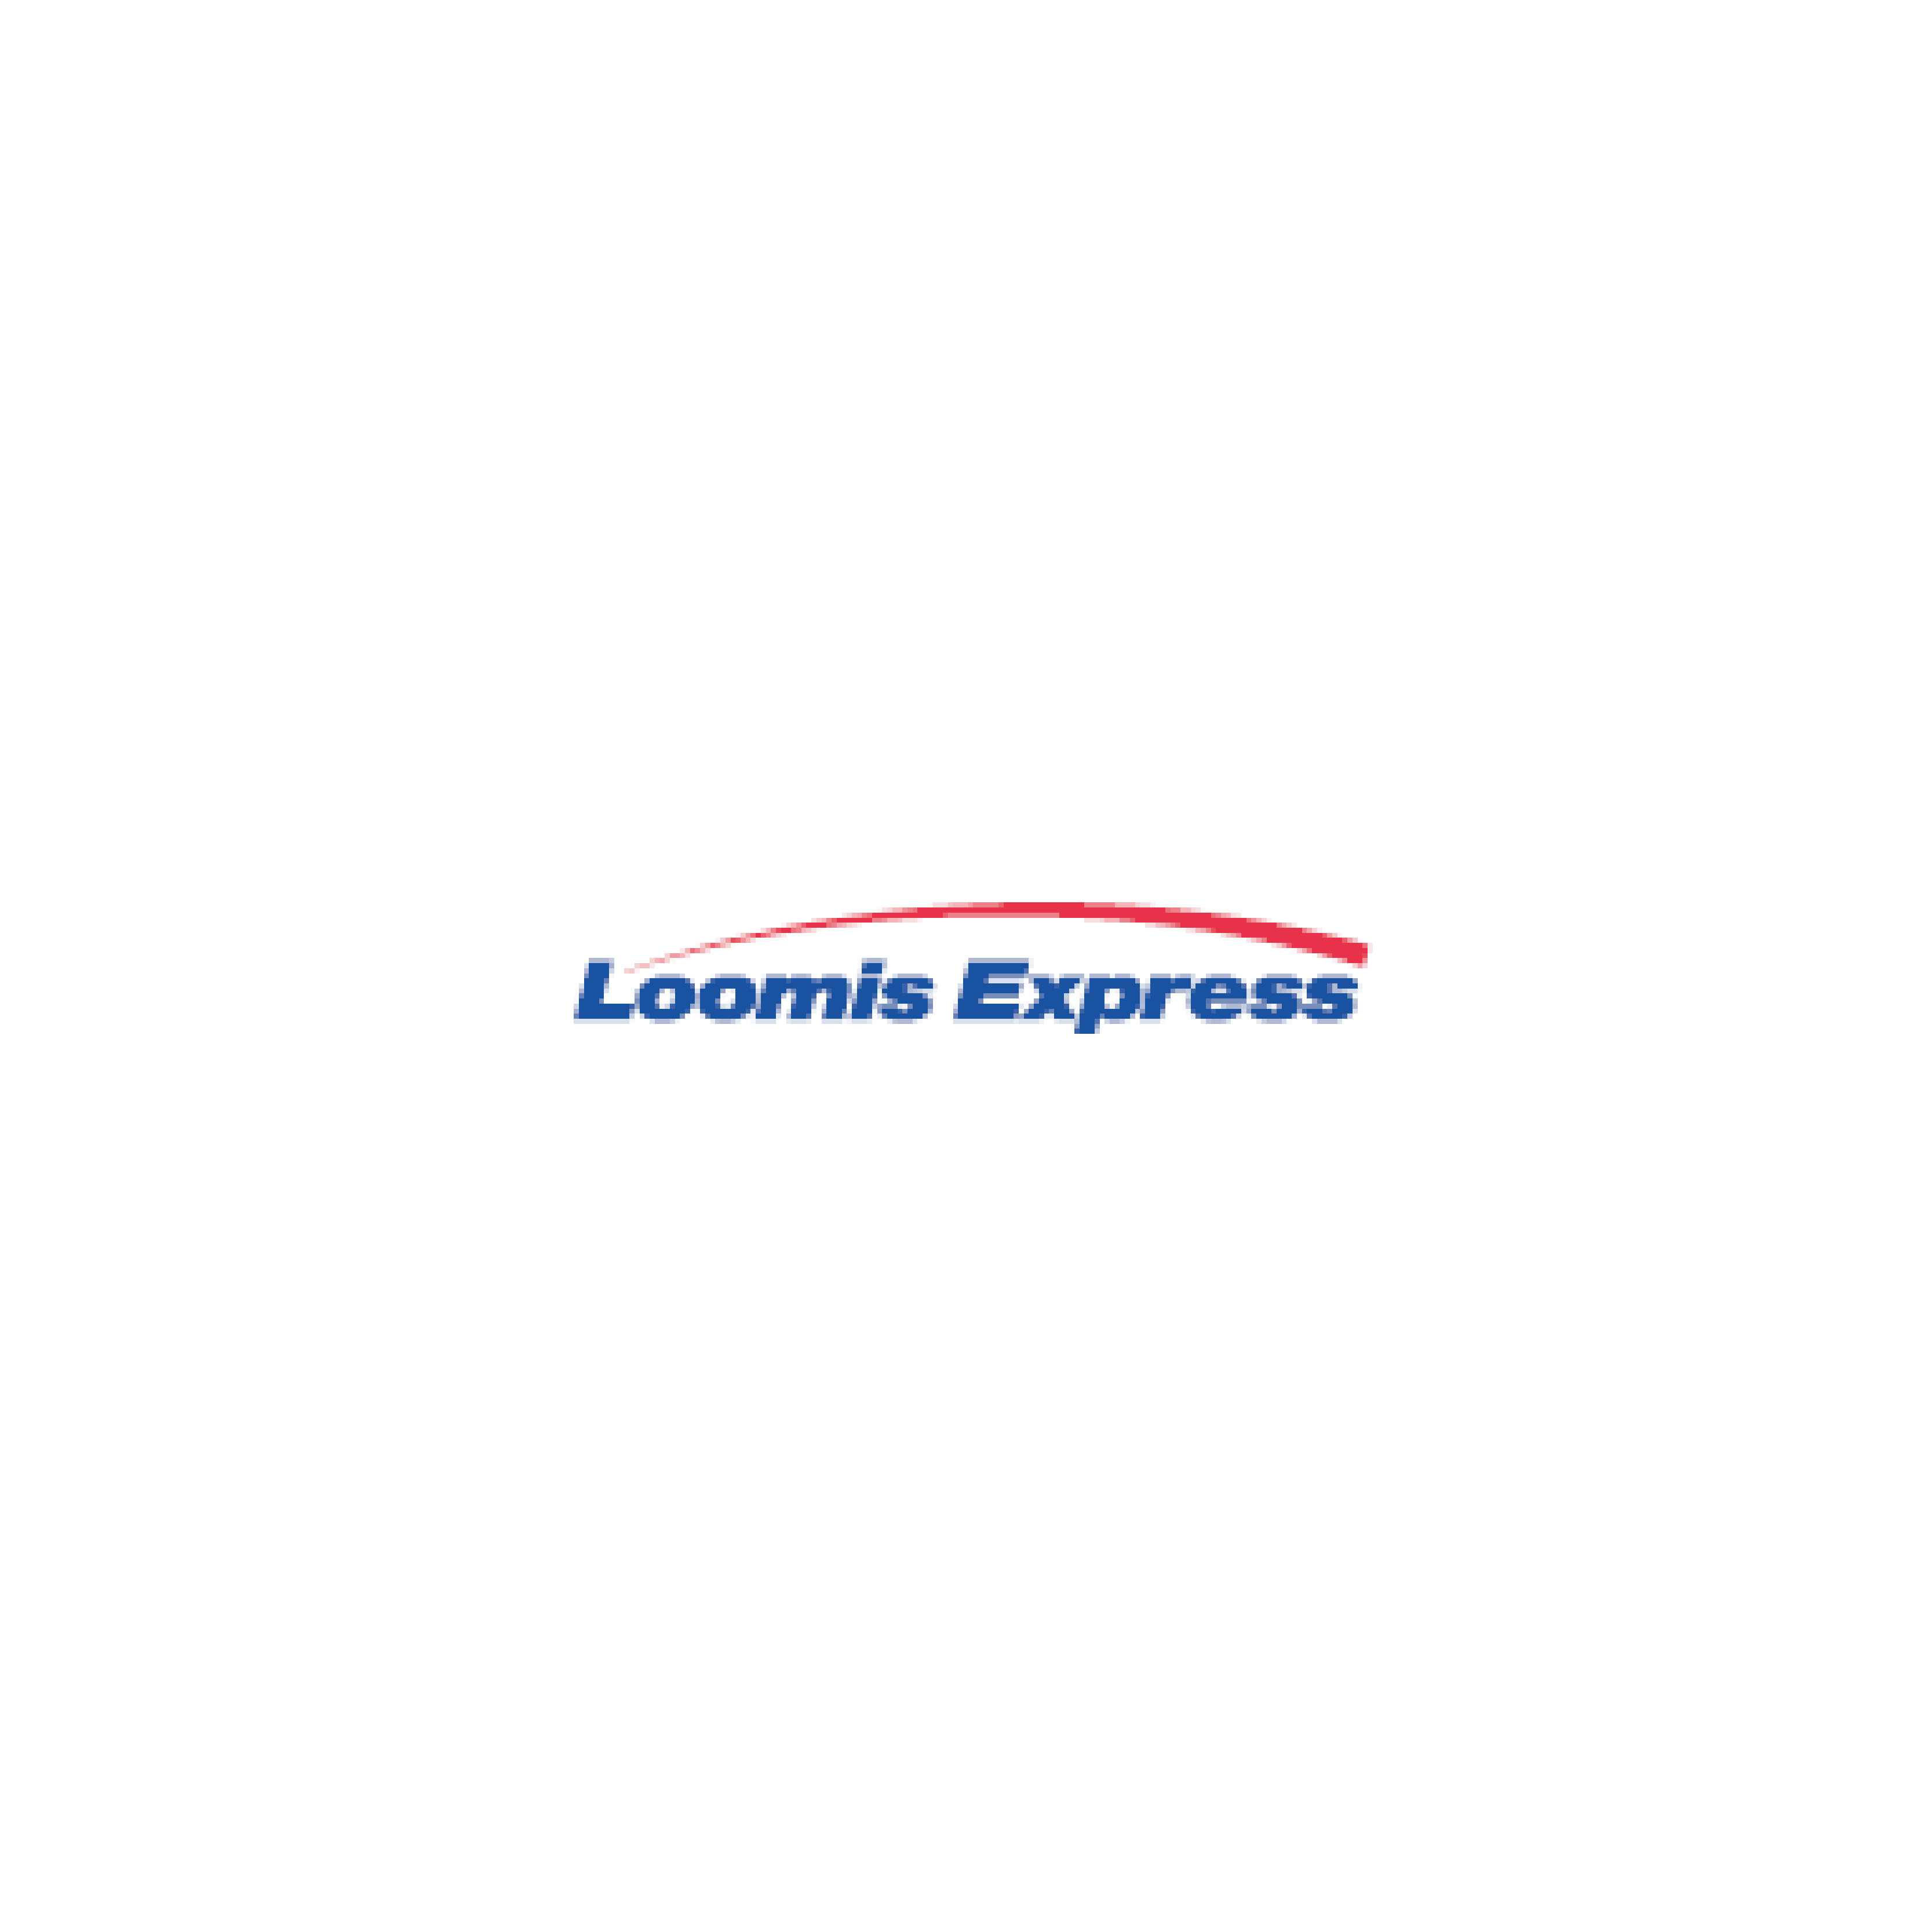 Loomis Express Shipedge Integration